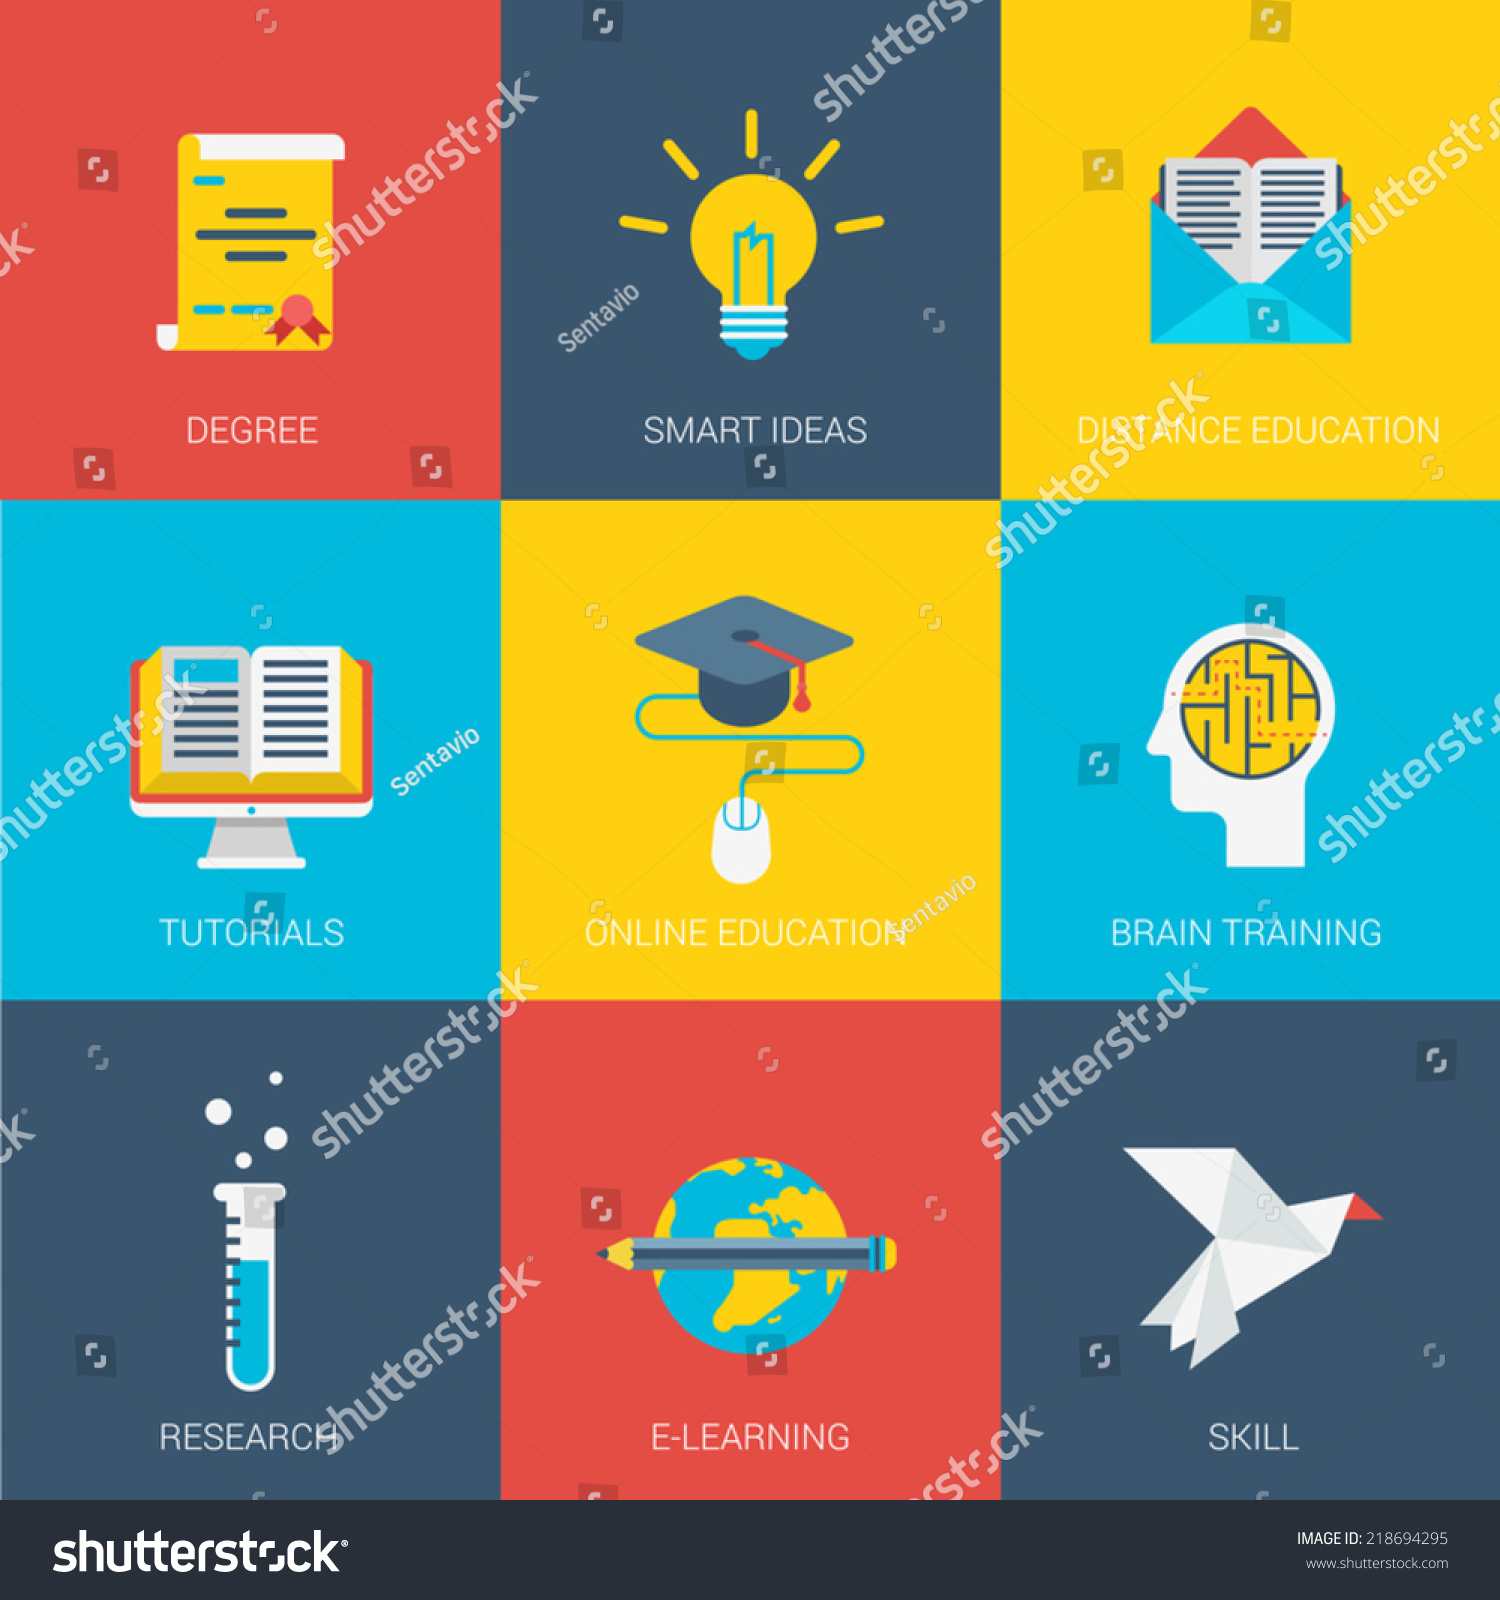 Graphic Designer Education And Training Graphic Design Careers Set Of Flat Design Concept Icons